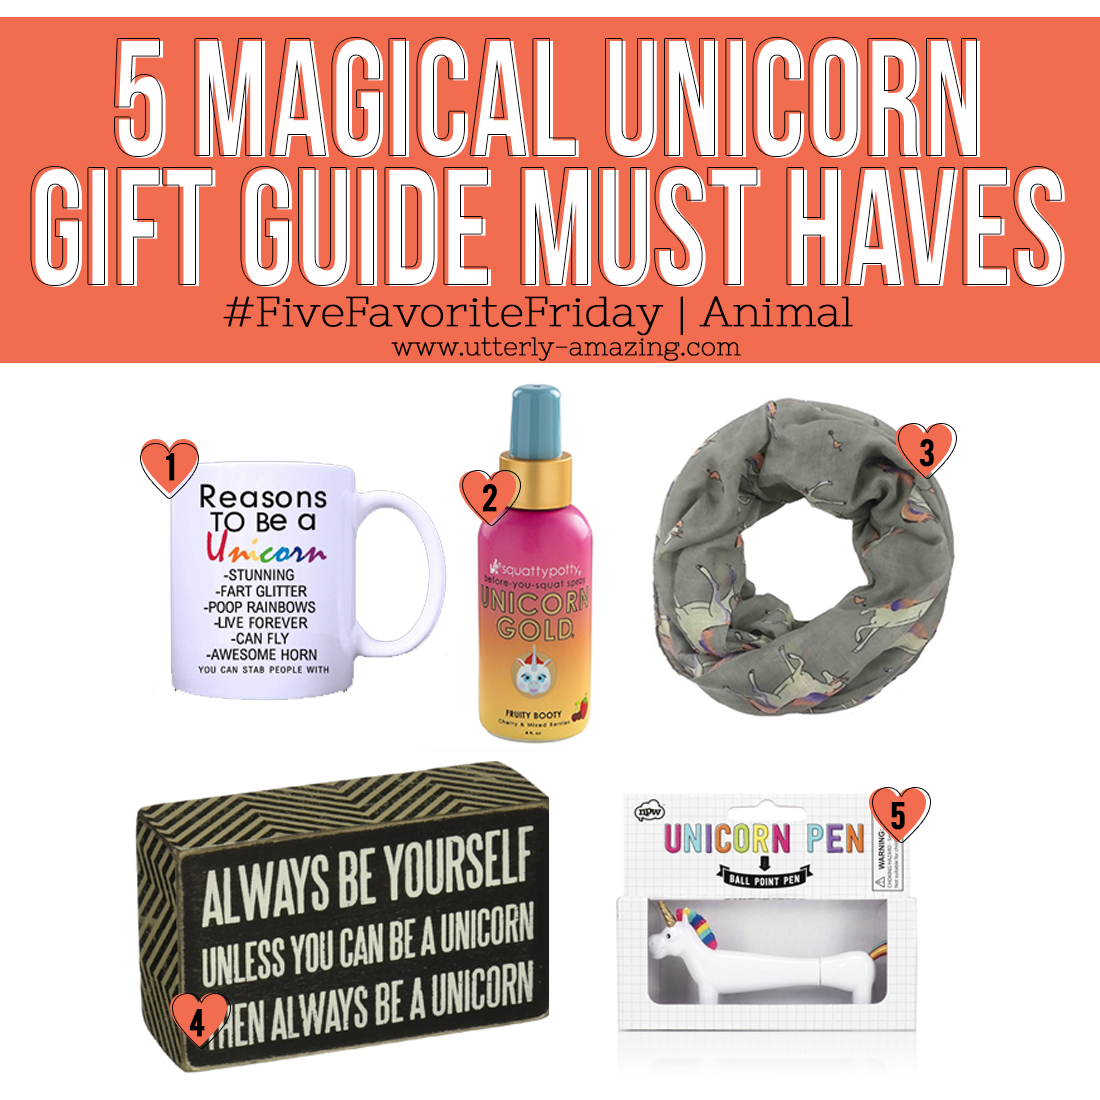 5 Magical Unicorn Gift Guide Must Haves | #FiveFavoriteFriday